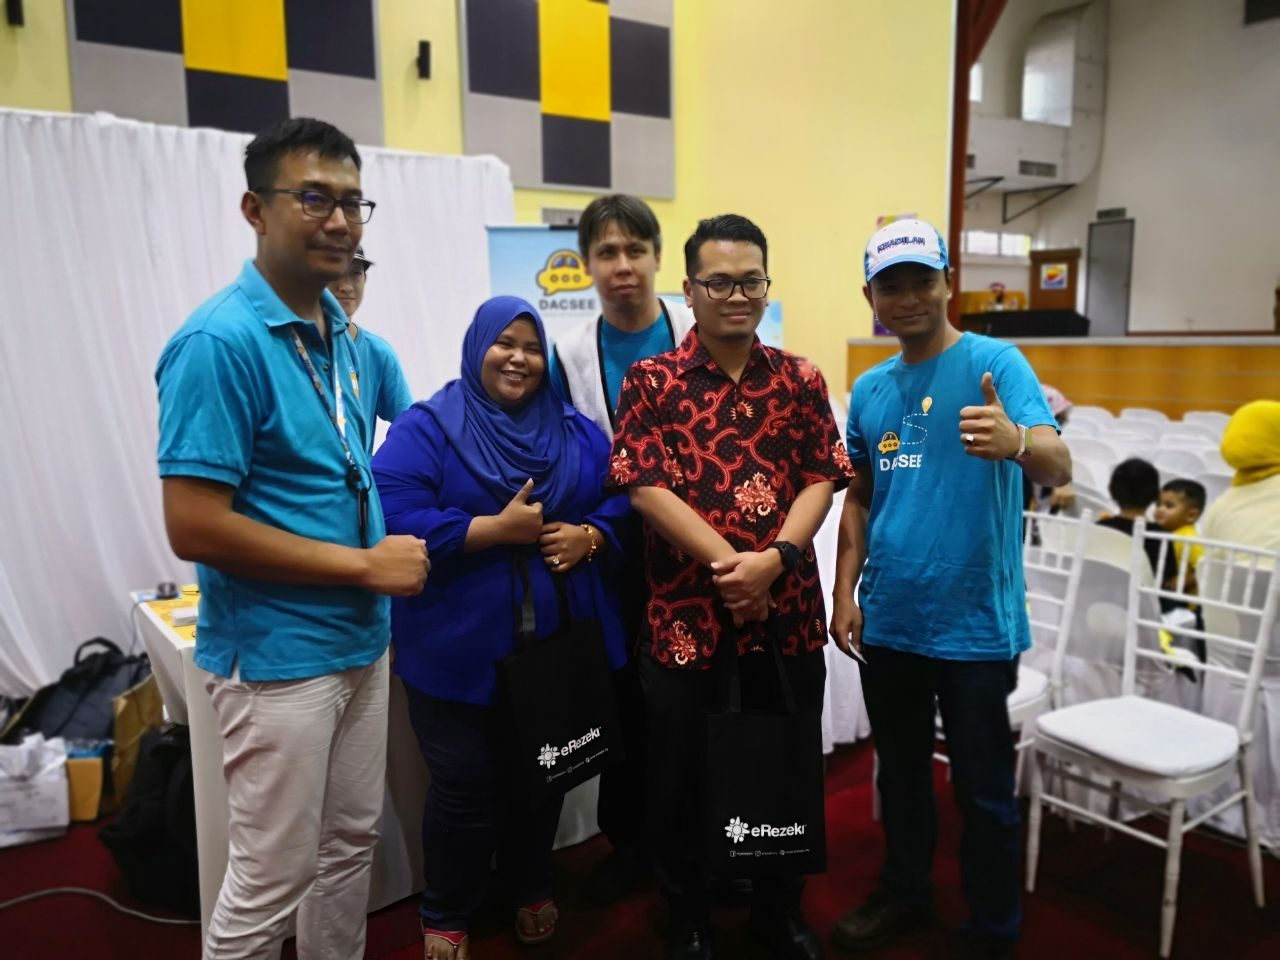 DACSEE in the 2018 OKU Job Fair is focus in giving back to the community